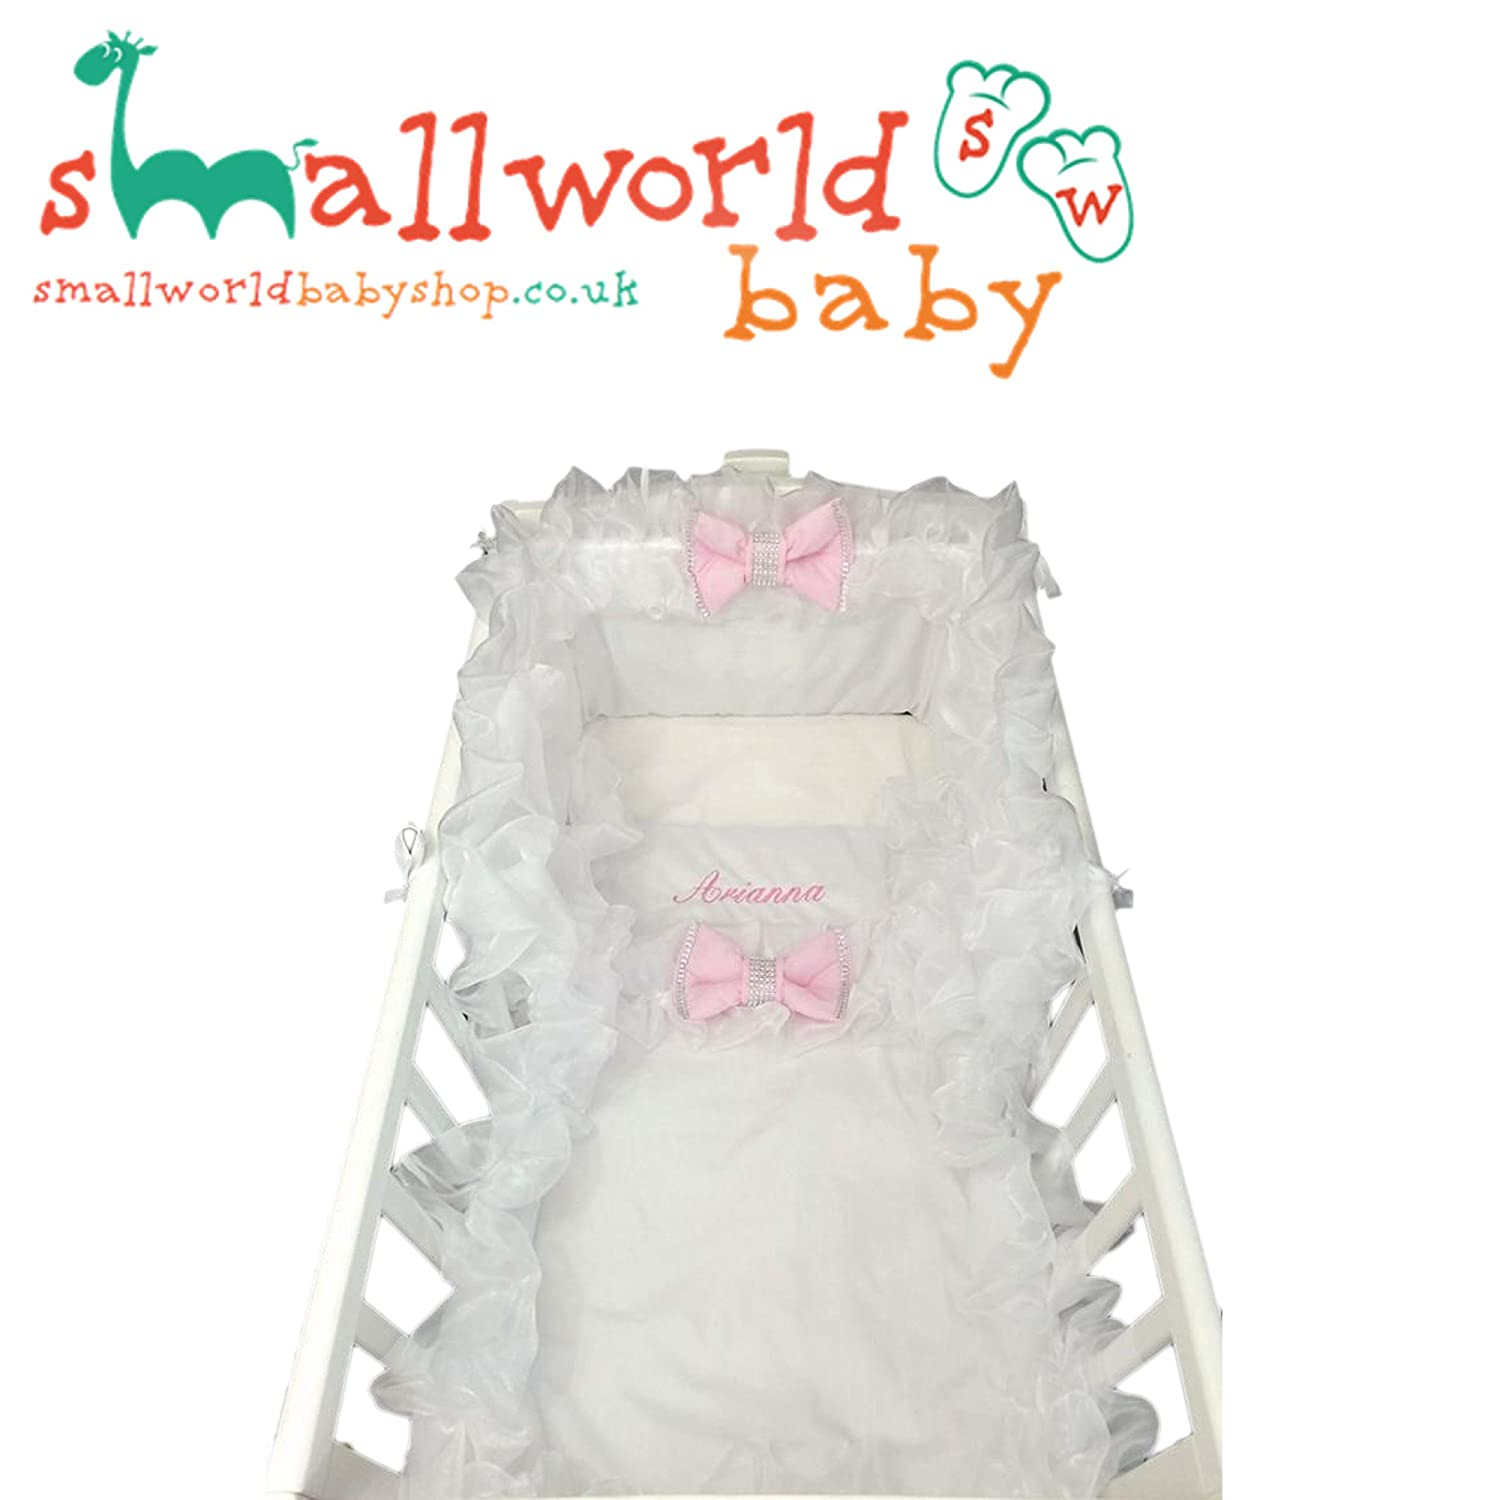 Personalised White Frilly Bling Pink Bow Crib Bedding Small World Baby Shop